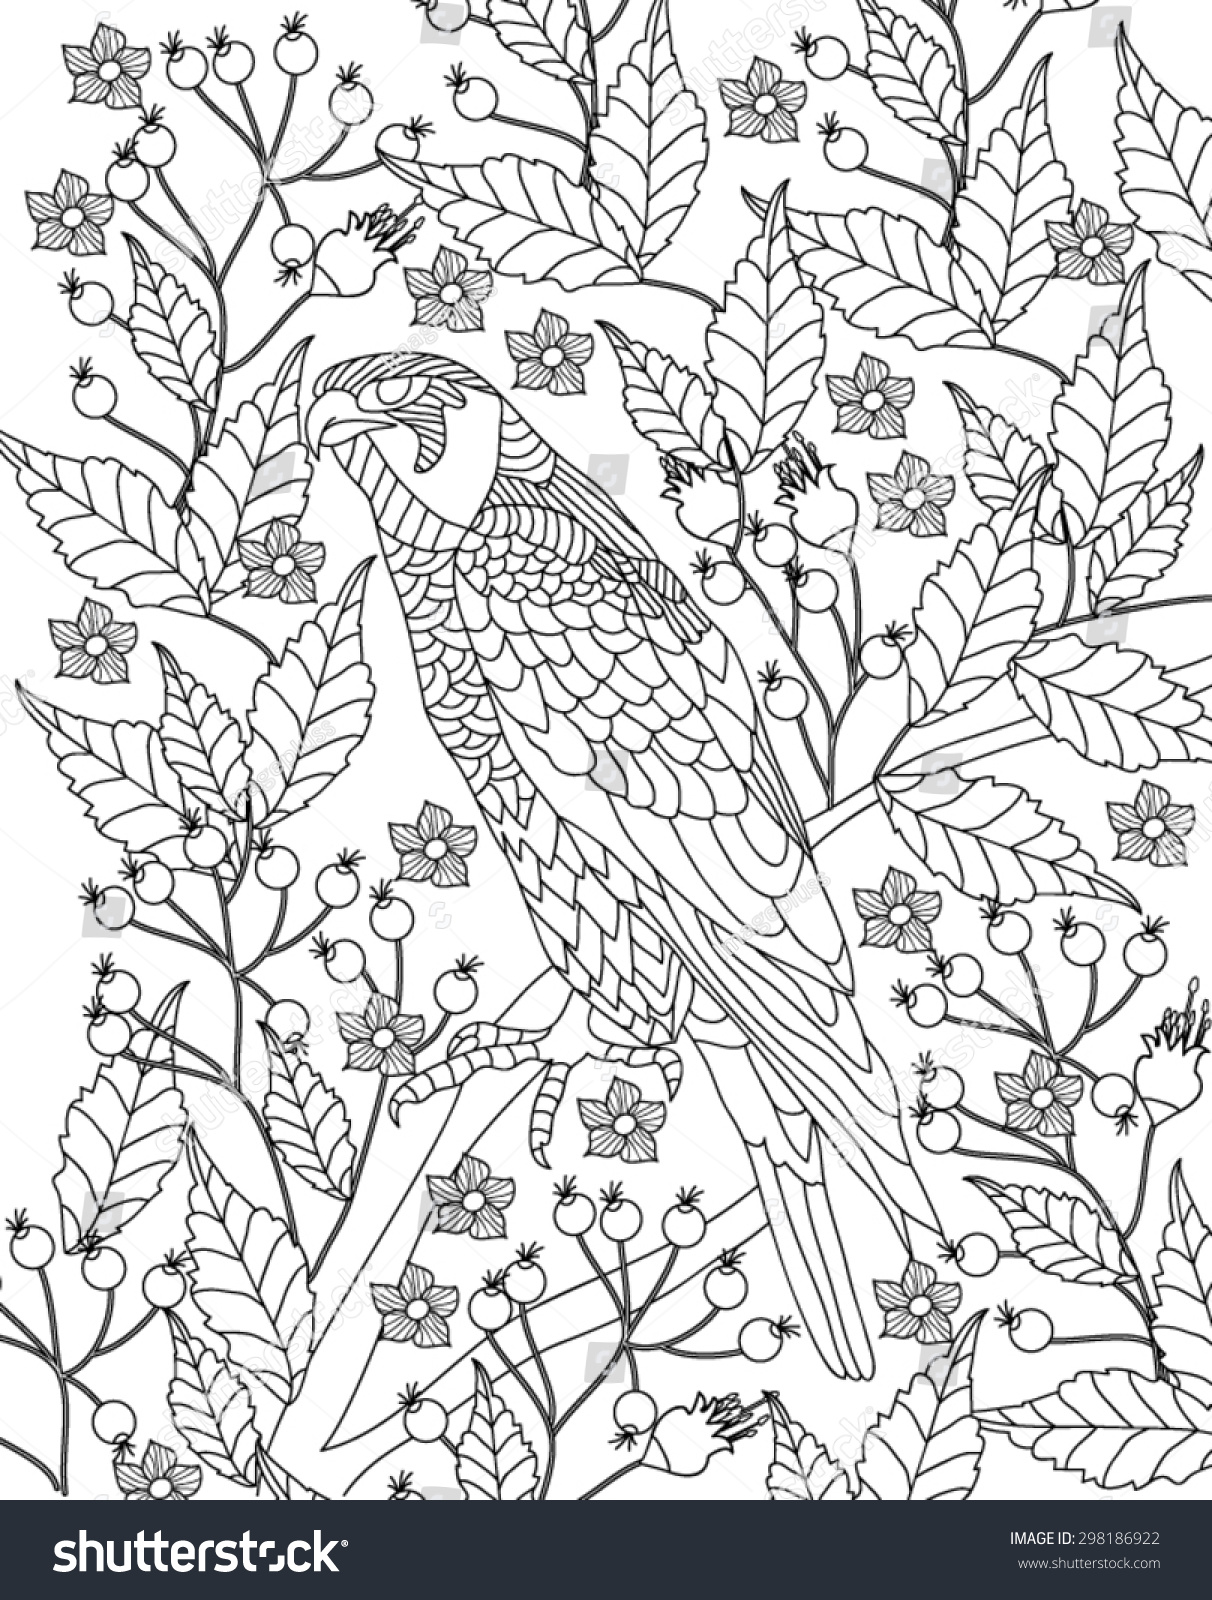 hand drawn bird coloring page stock vector 298186922 shutterstock